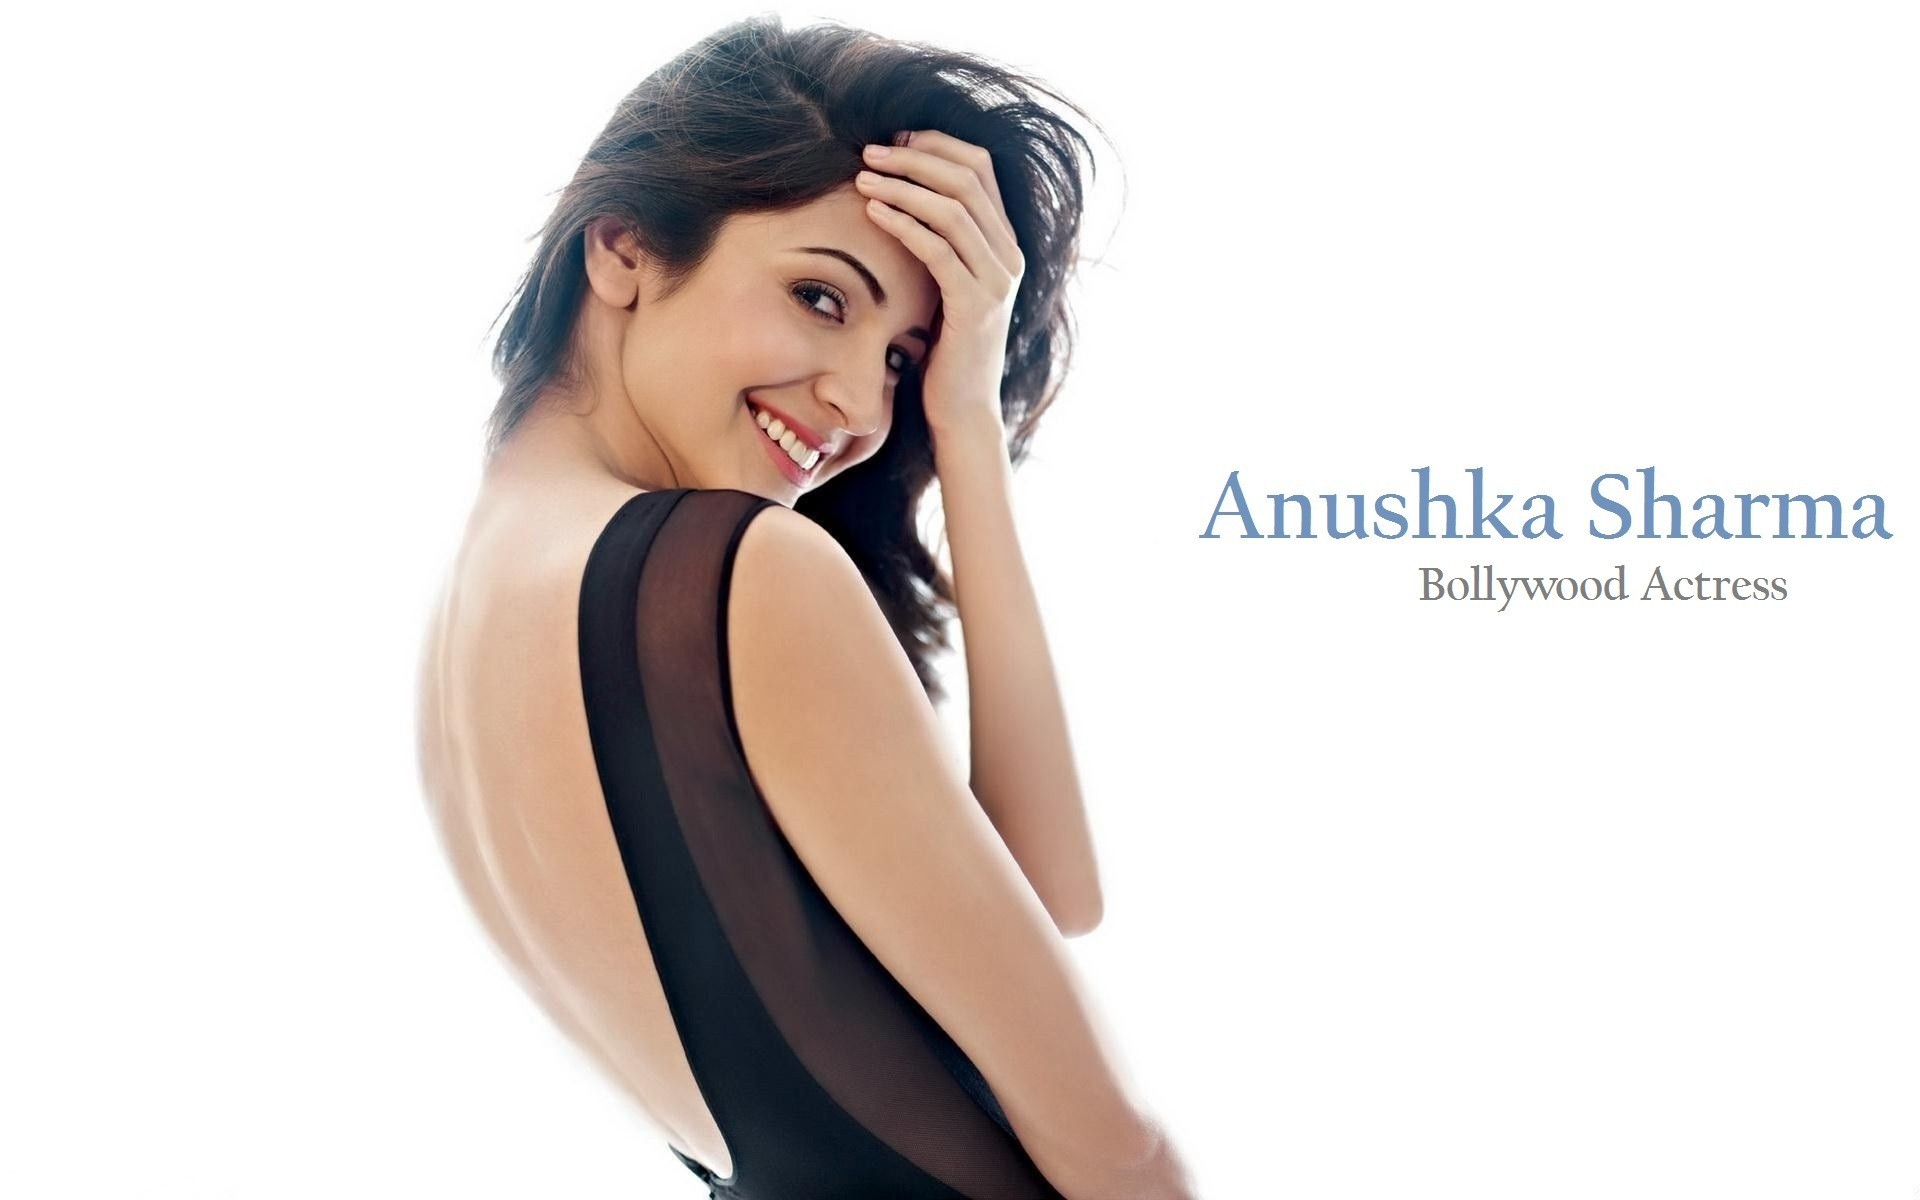 1920x1200 Beautiful Smile Face of Indian Celebrity Anushka Sharma with Black Top HD  Wallpaper Download